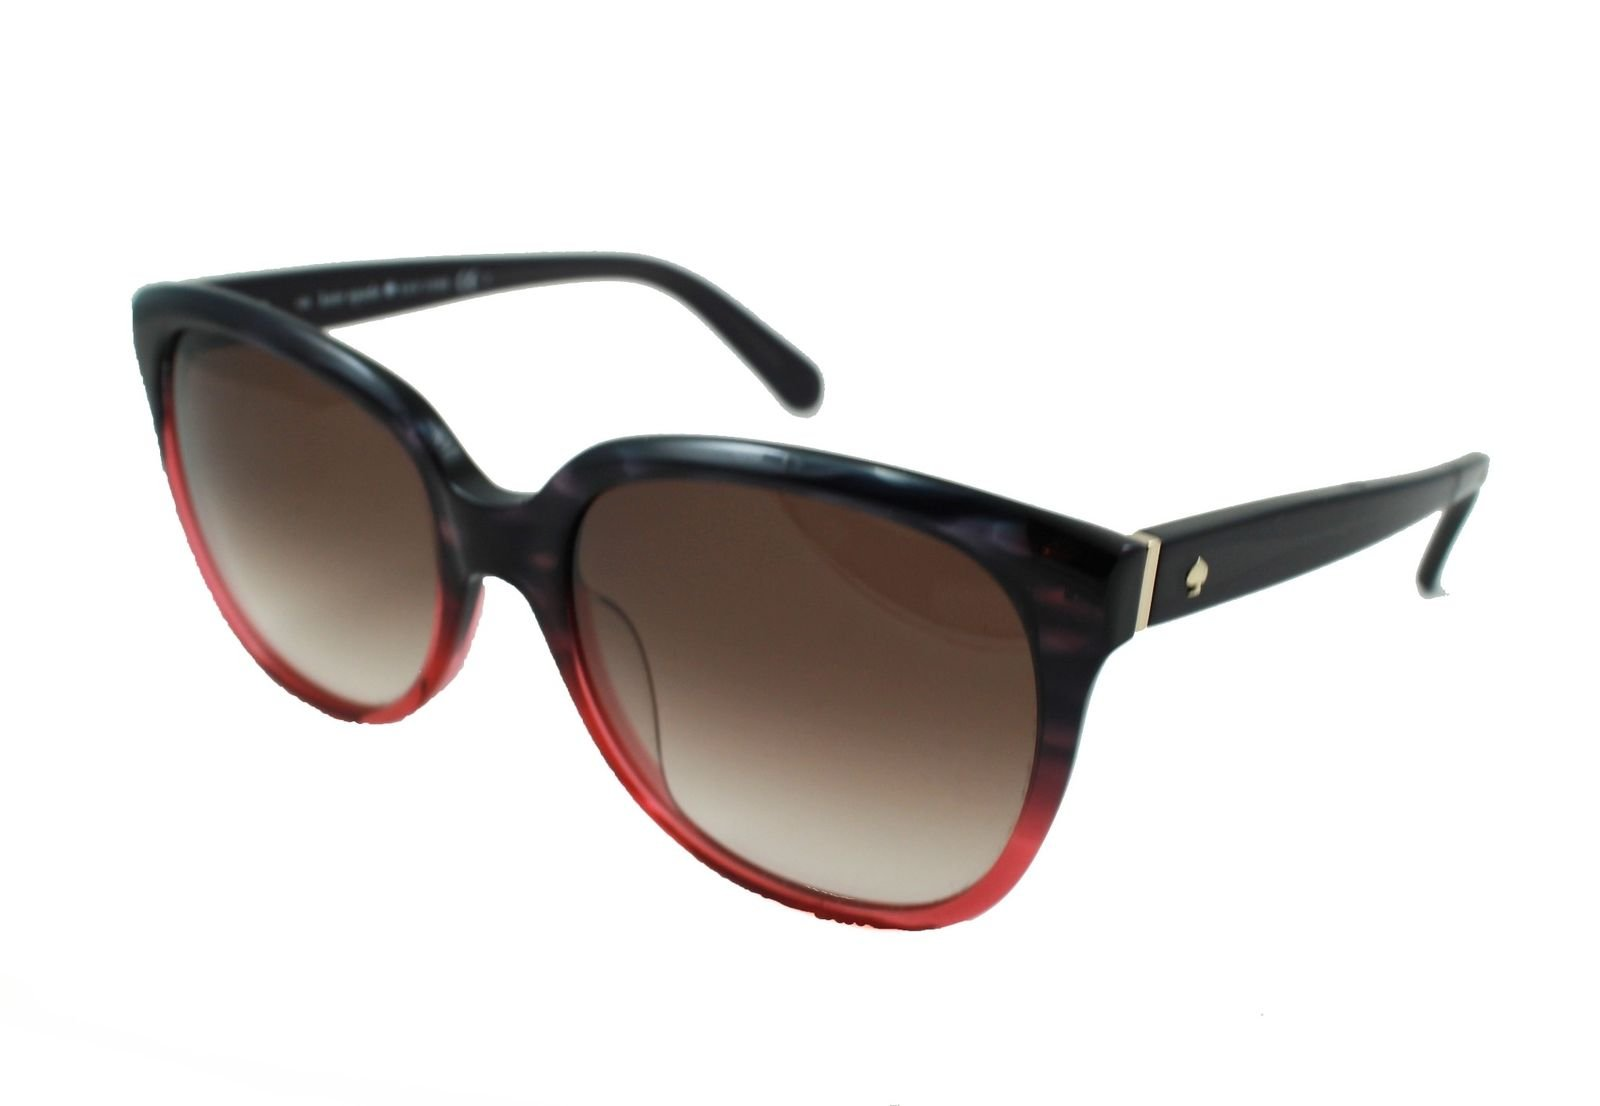 21f46a1d4bd7e Kate Spade Bayleigh s Sunglasses Rose to Black Tortoise Fade Brown Gradient  55mm